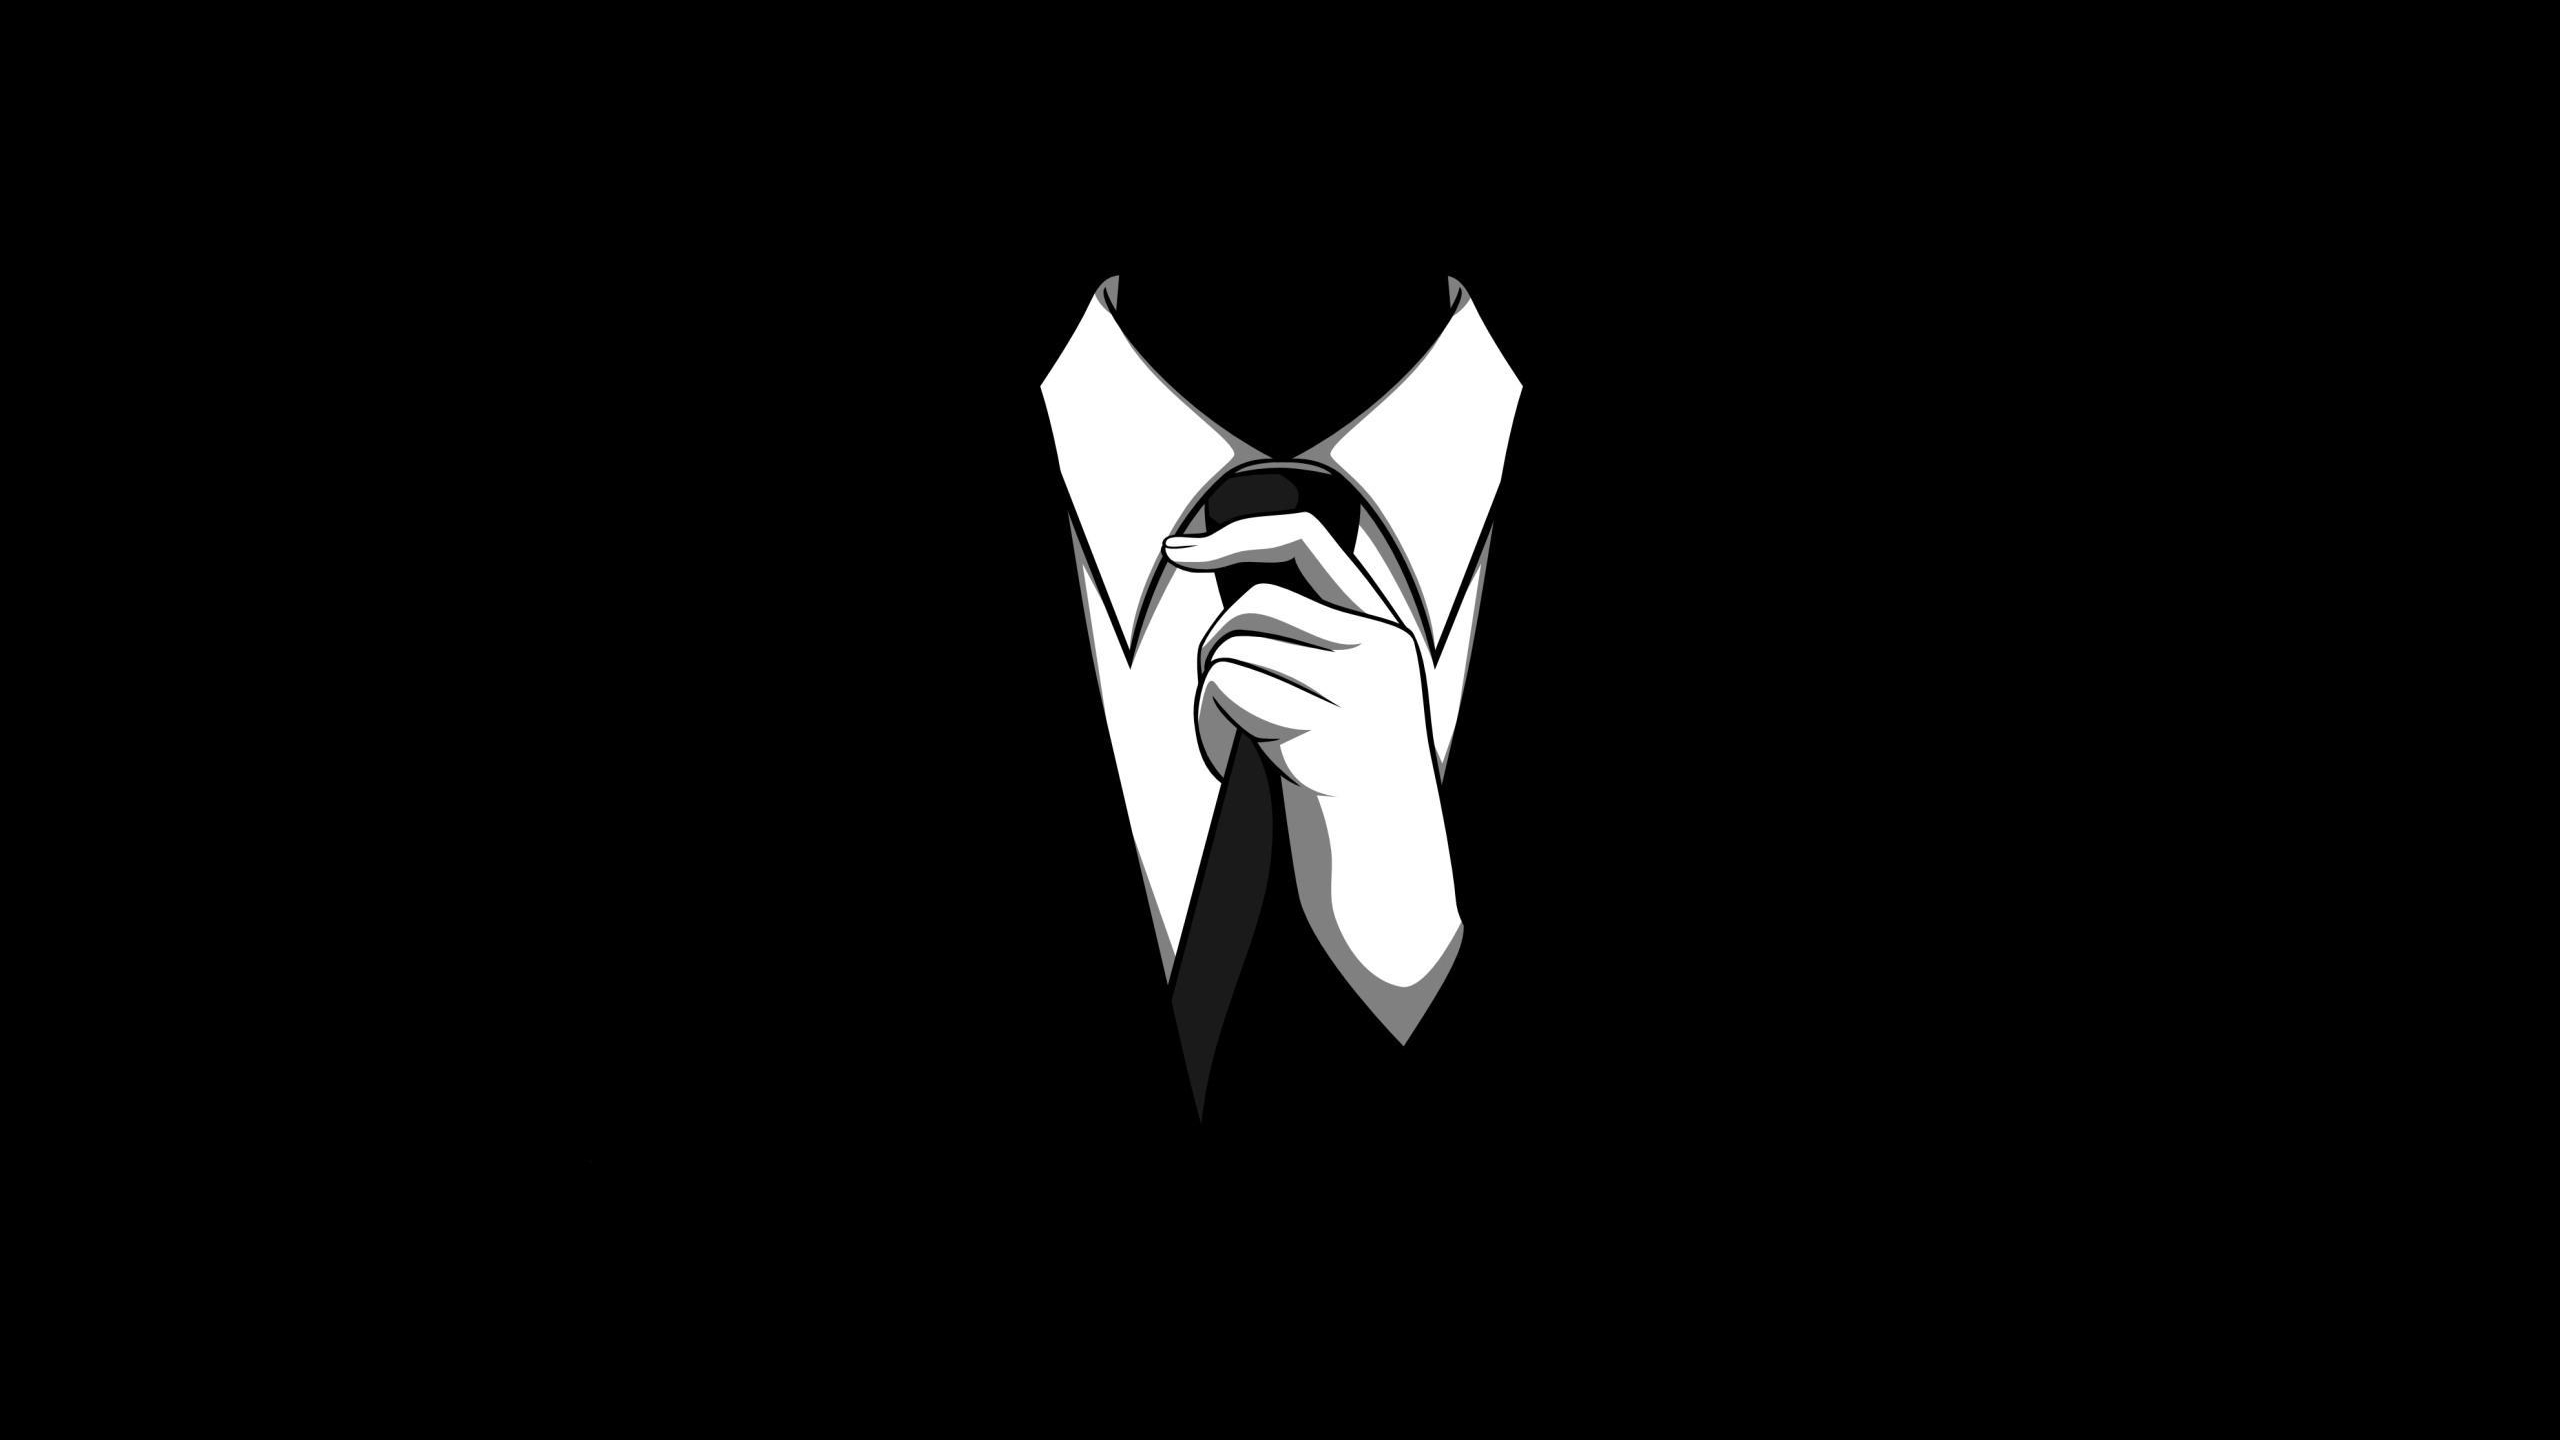 Anonymous black tie monochrome black background wallpaper background 2560x1440